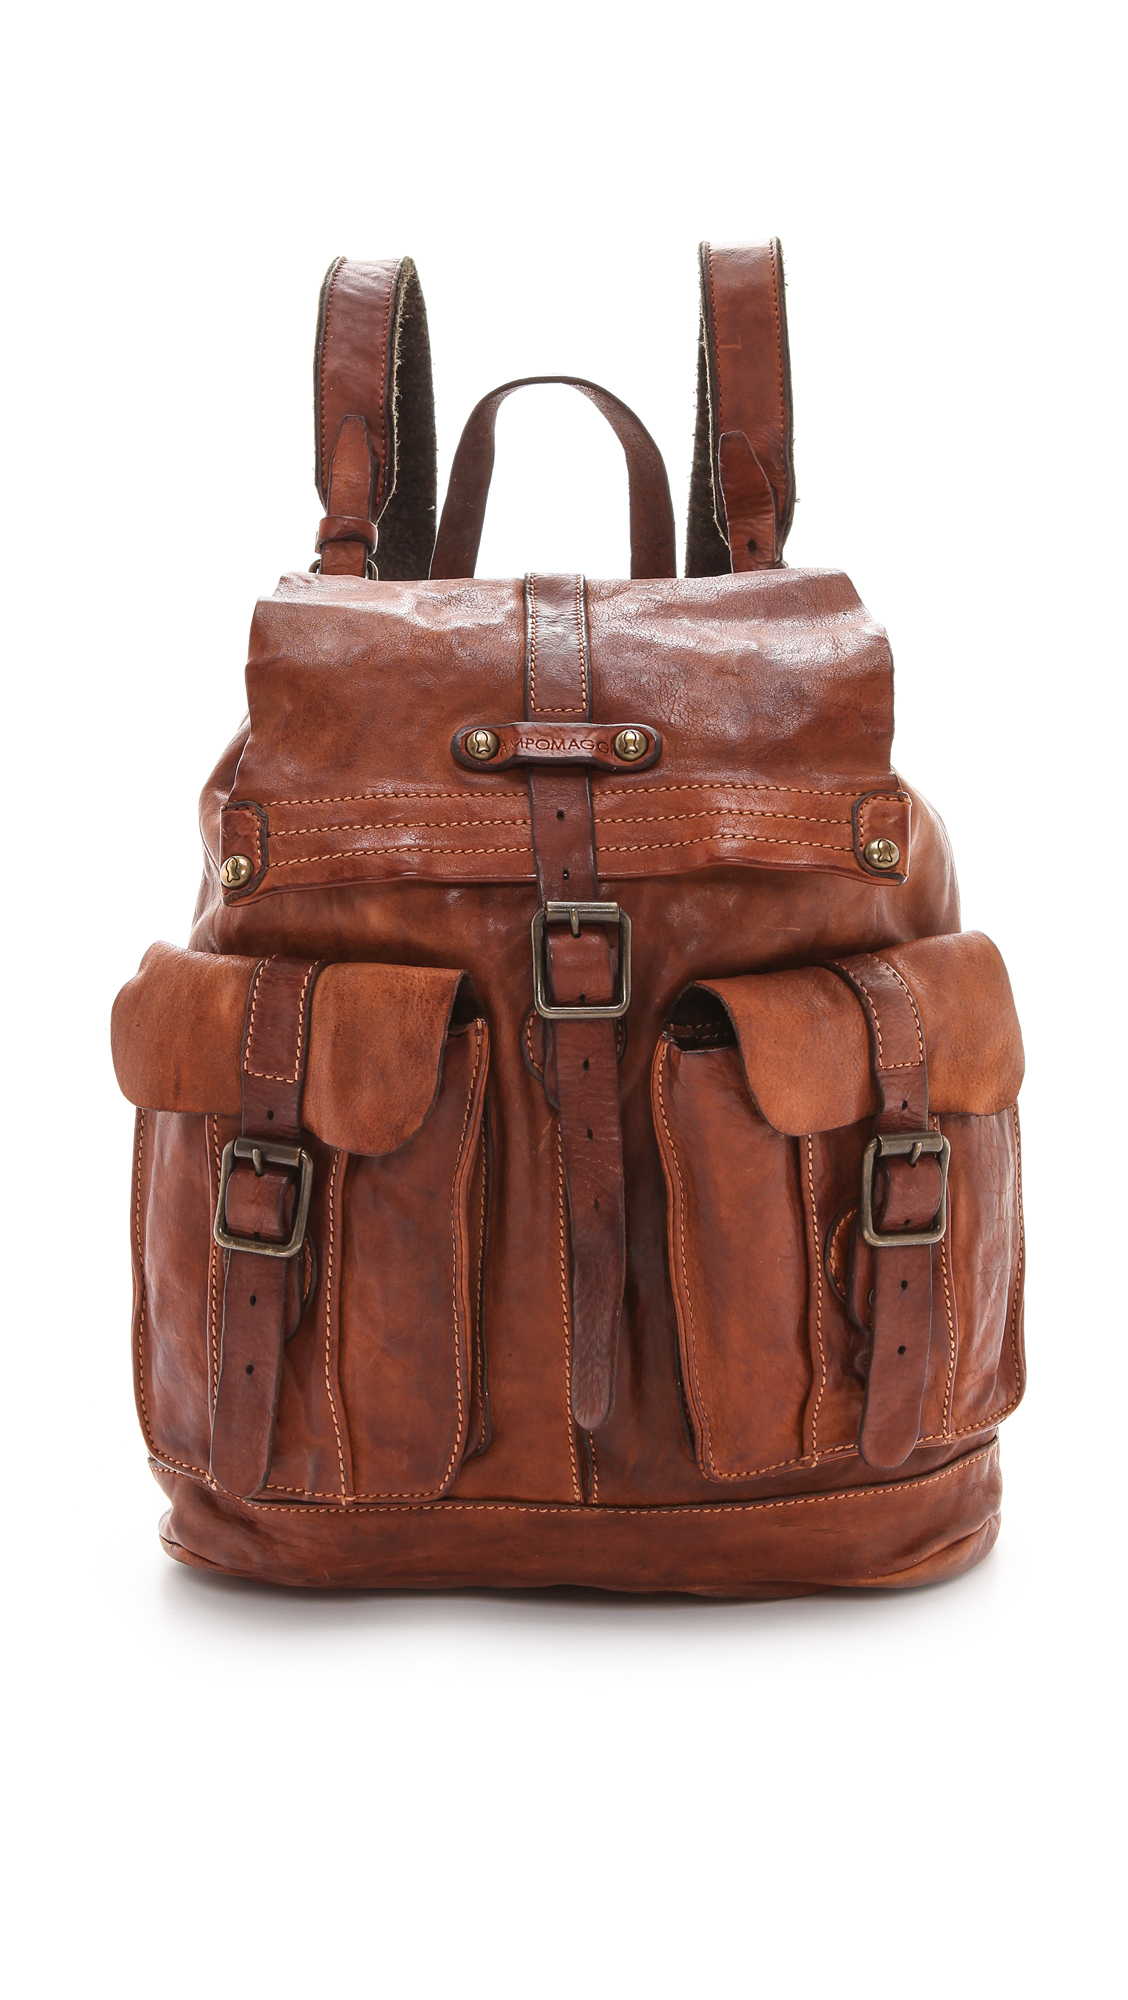 Campomaggi Washed Leather Backpack - Cognac in Brown